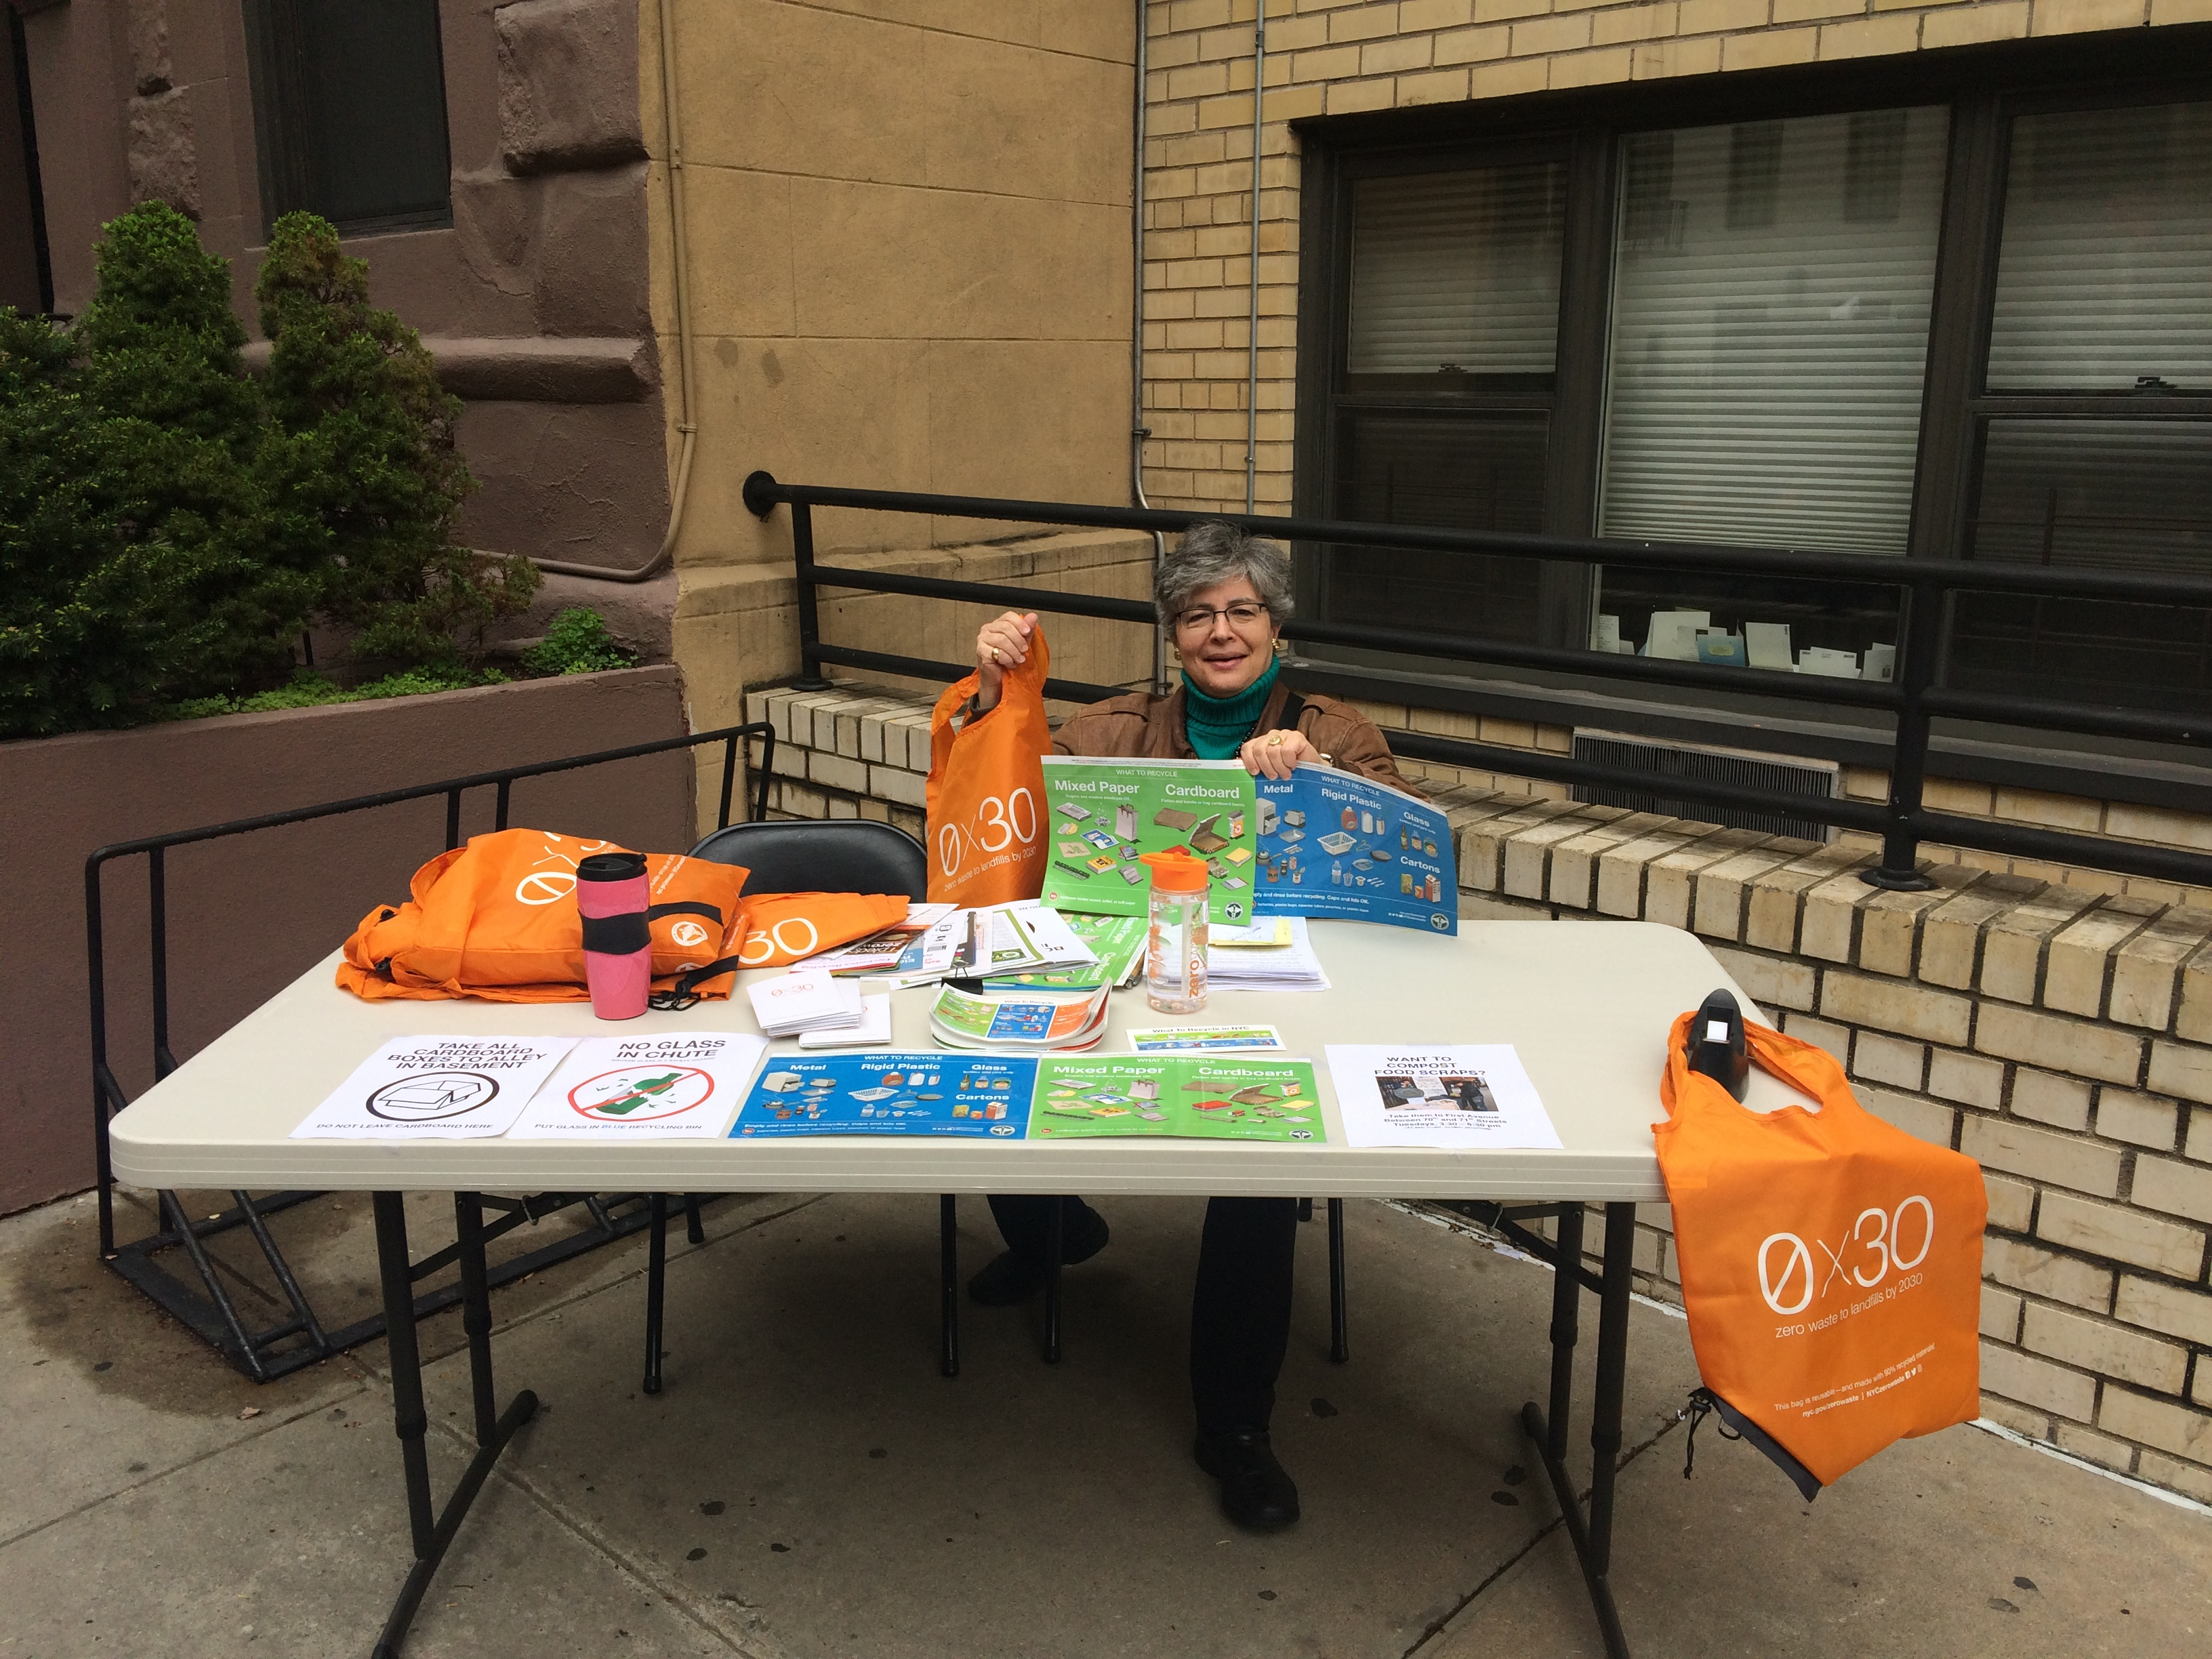 Jacquie Ottman Earth Day NYC Recycling Table